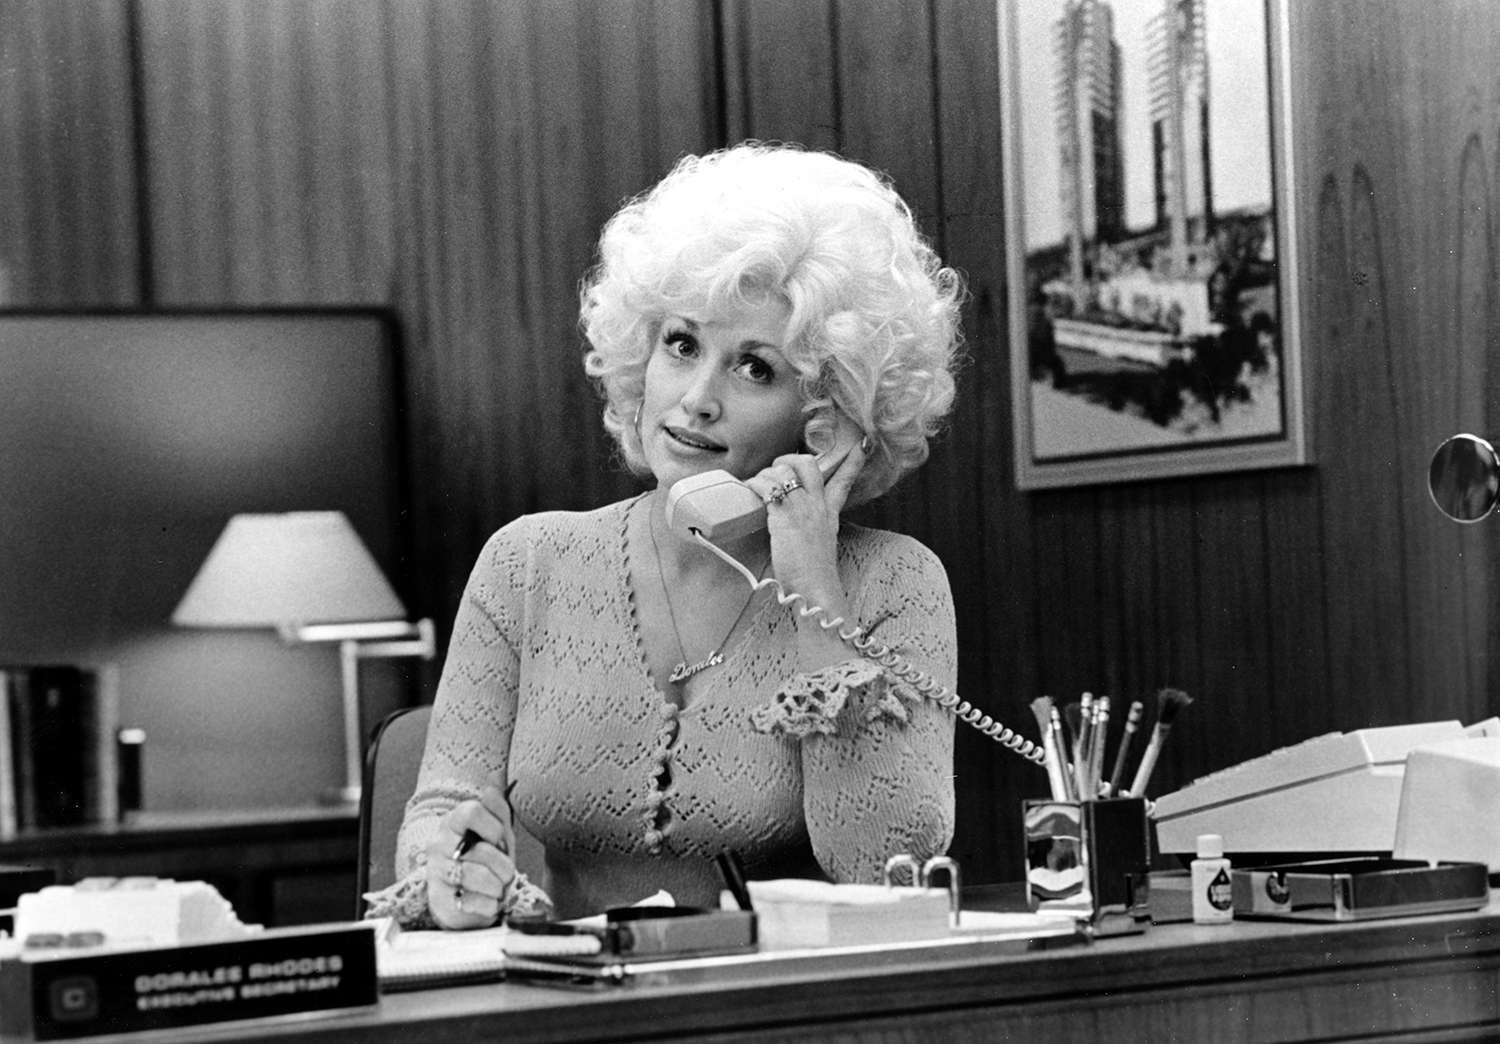 Country Singer Dolly Parton Acts In A Scene From The Movie 9 To 5